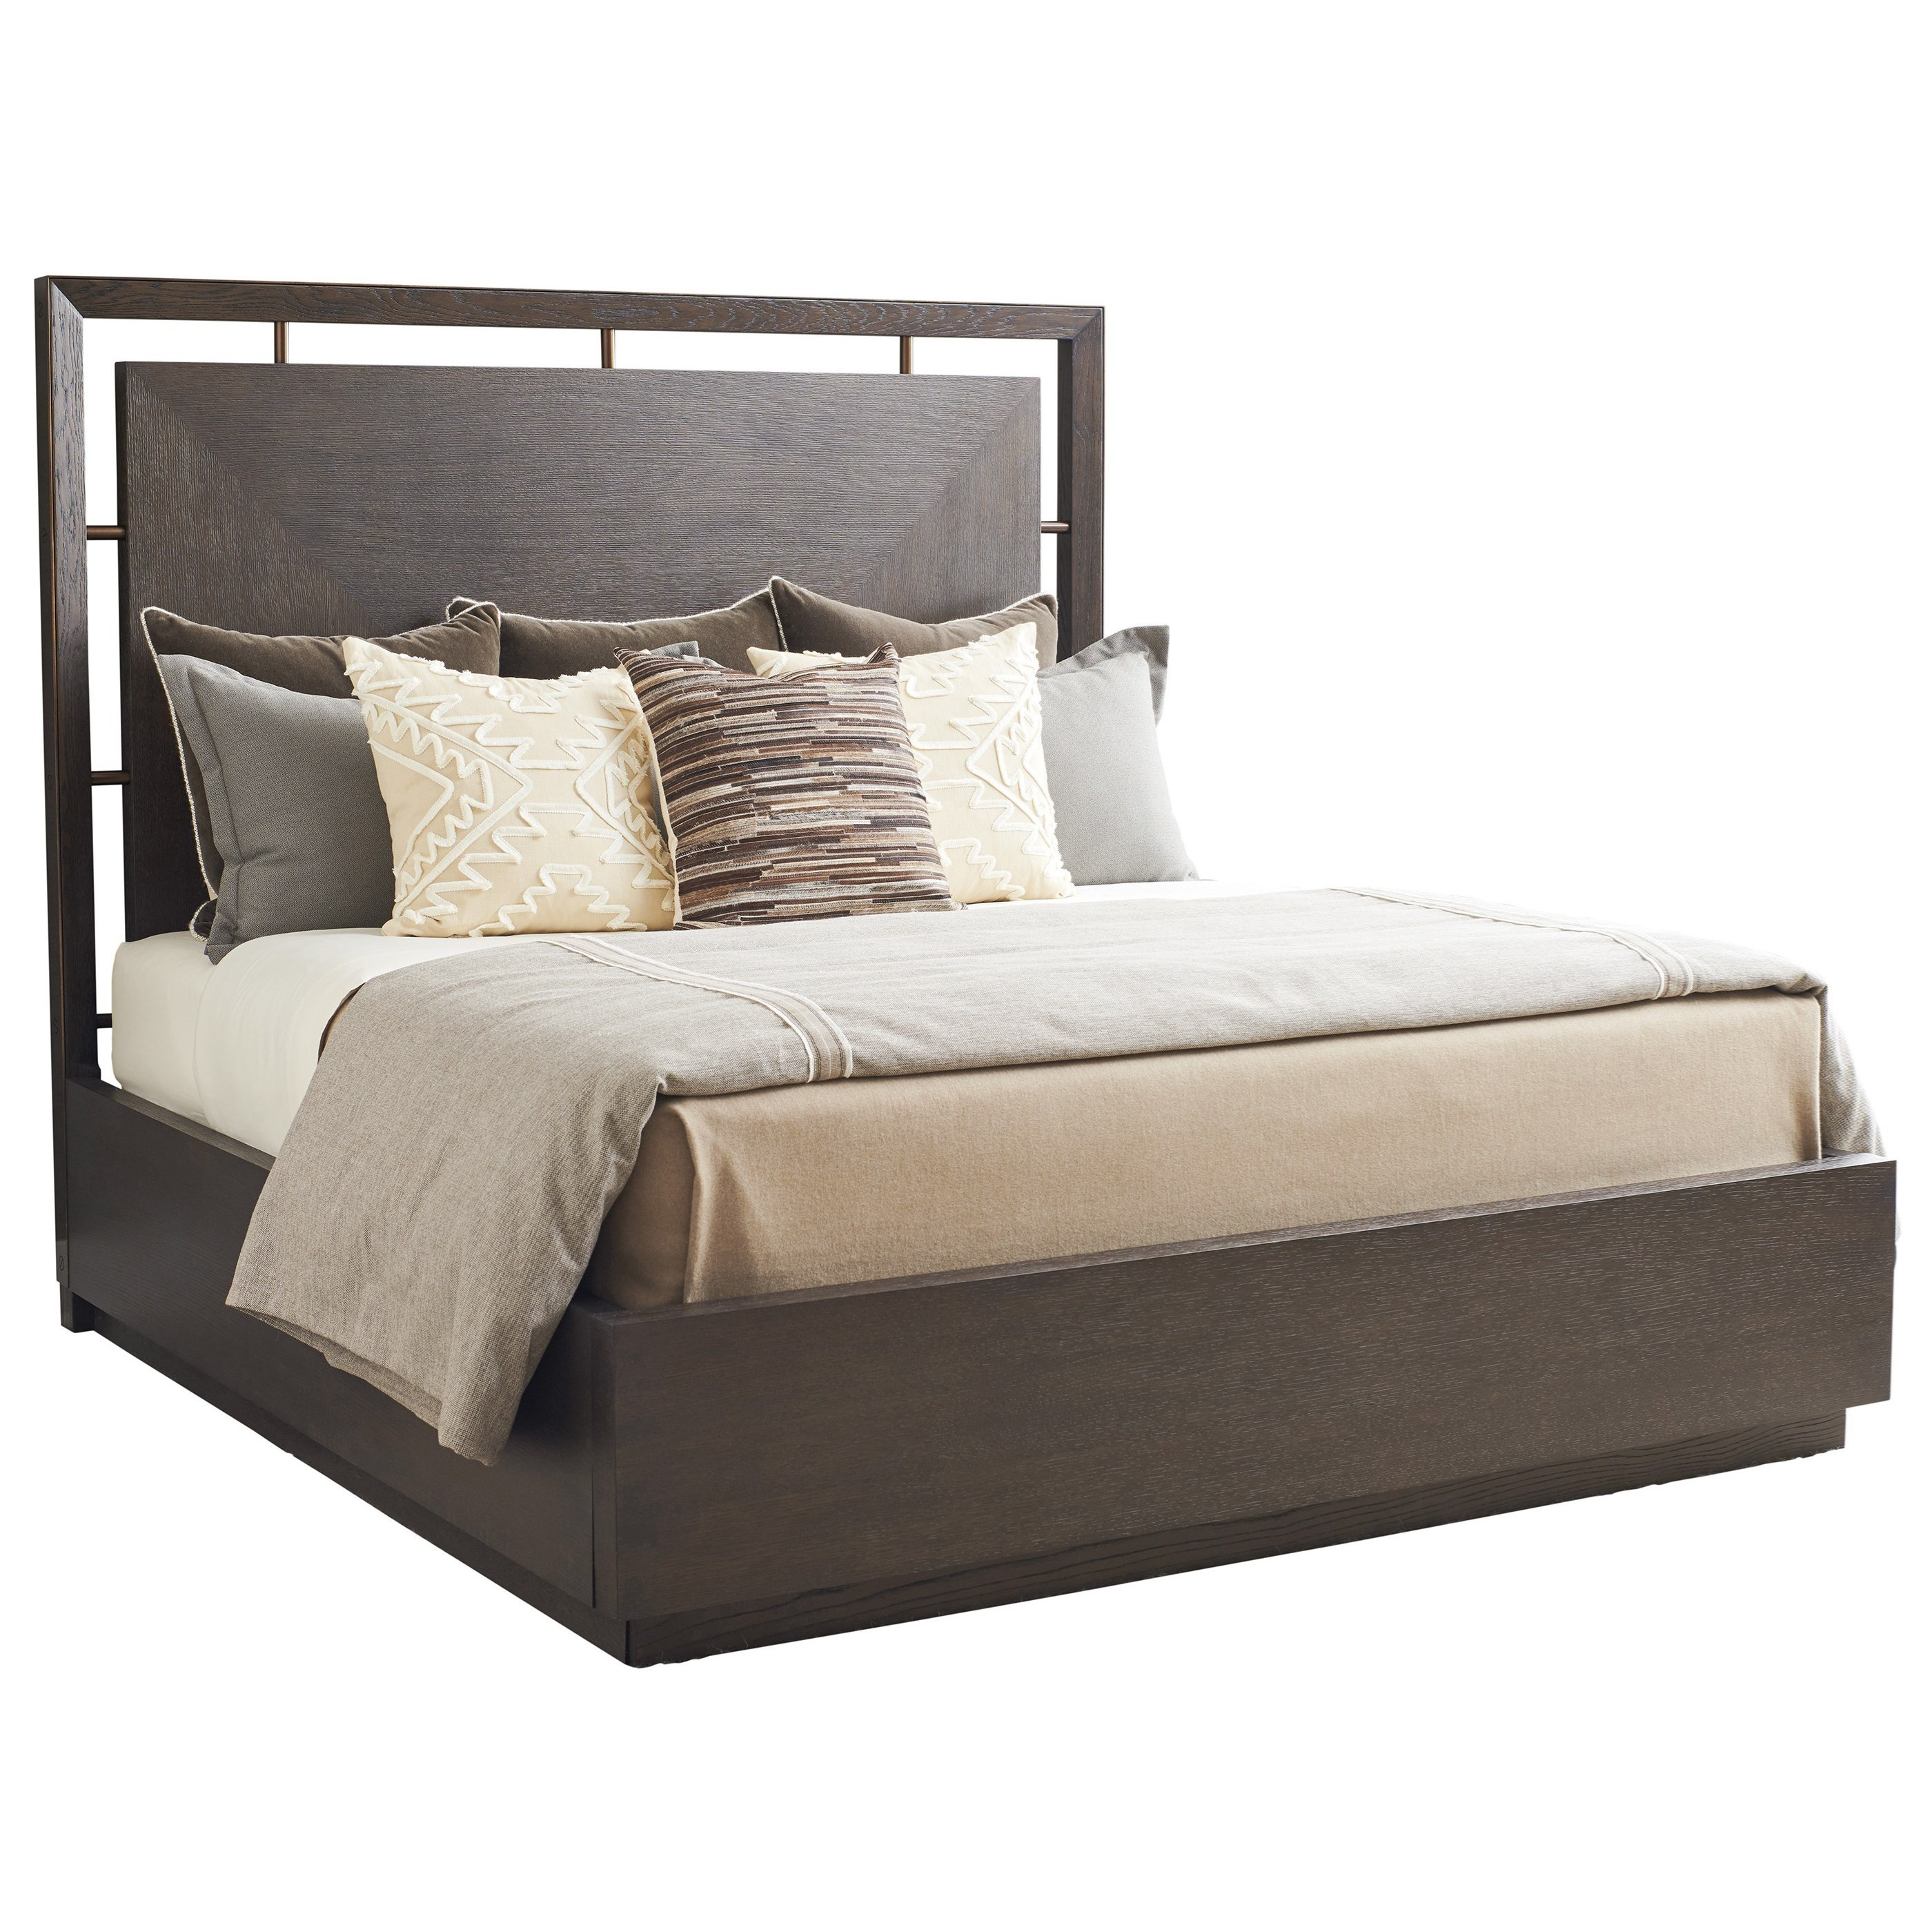 Park City Sundance Queen Panel Bed by Barclay Butera at Baer's Furniture